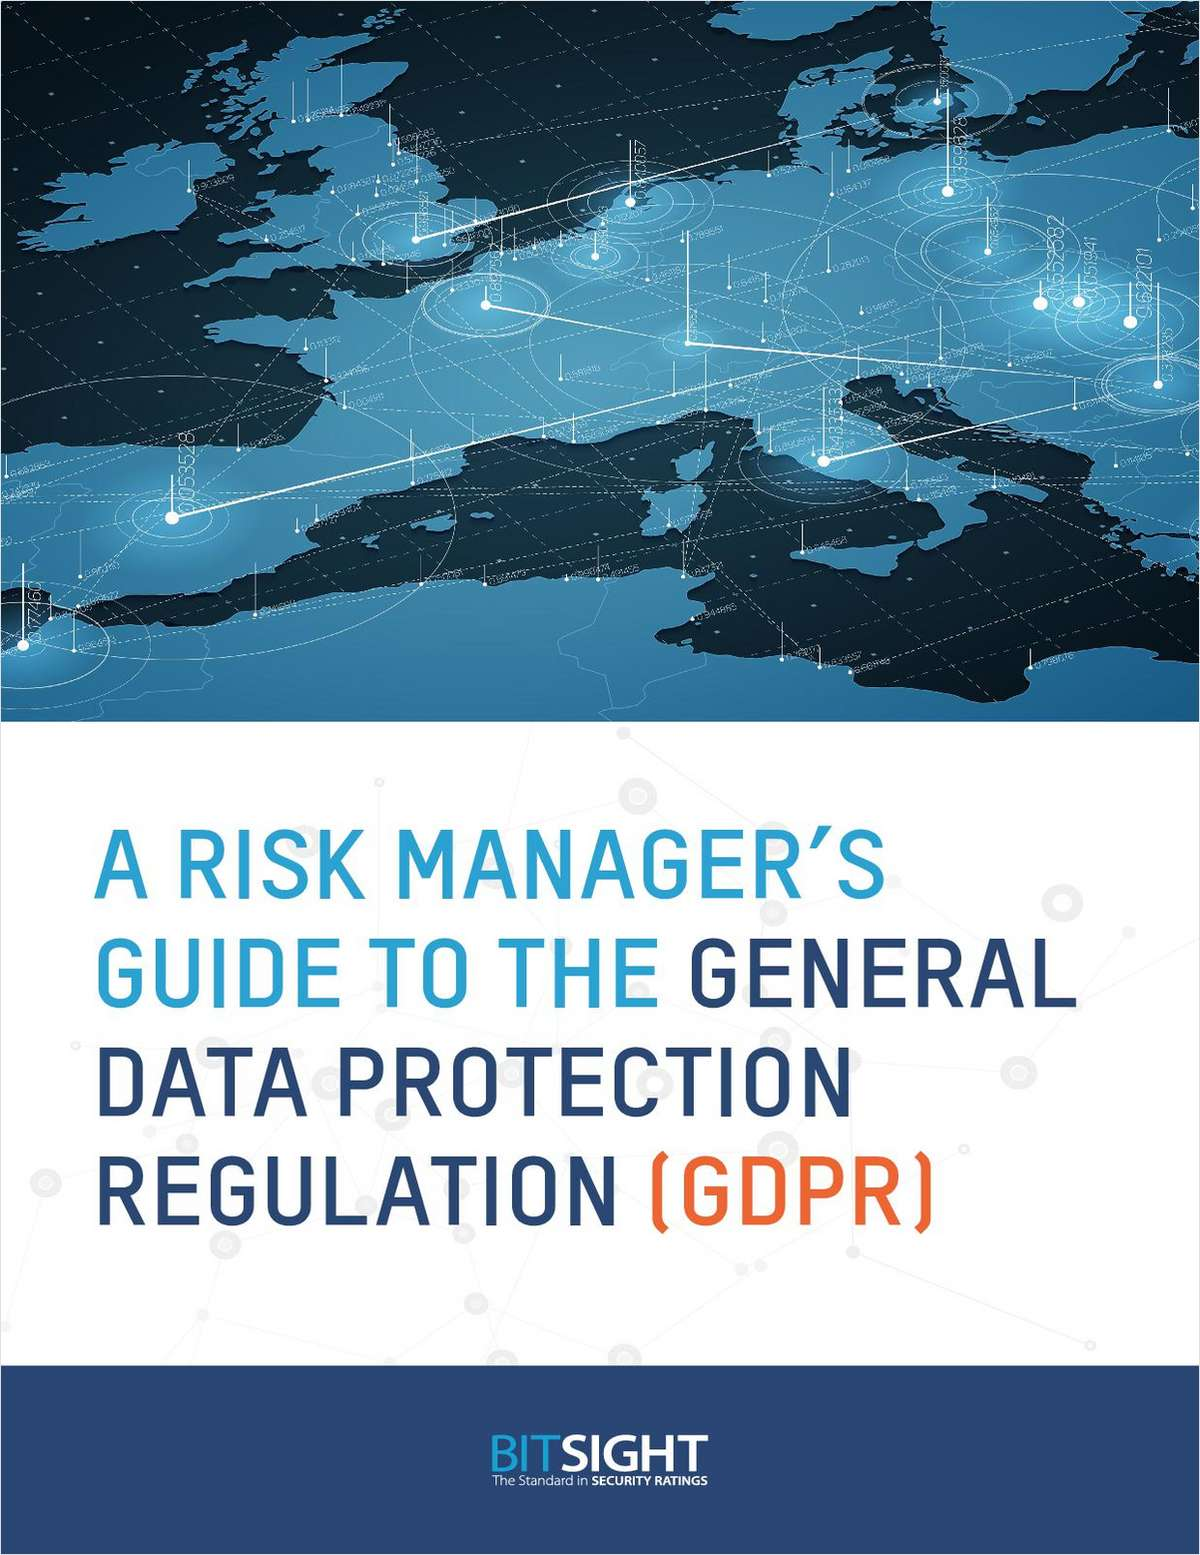 A Risk Manager's Guide to the General Data Protection Regulation